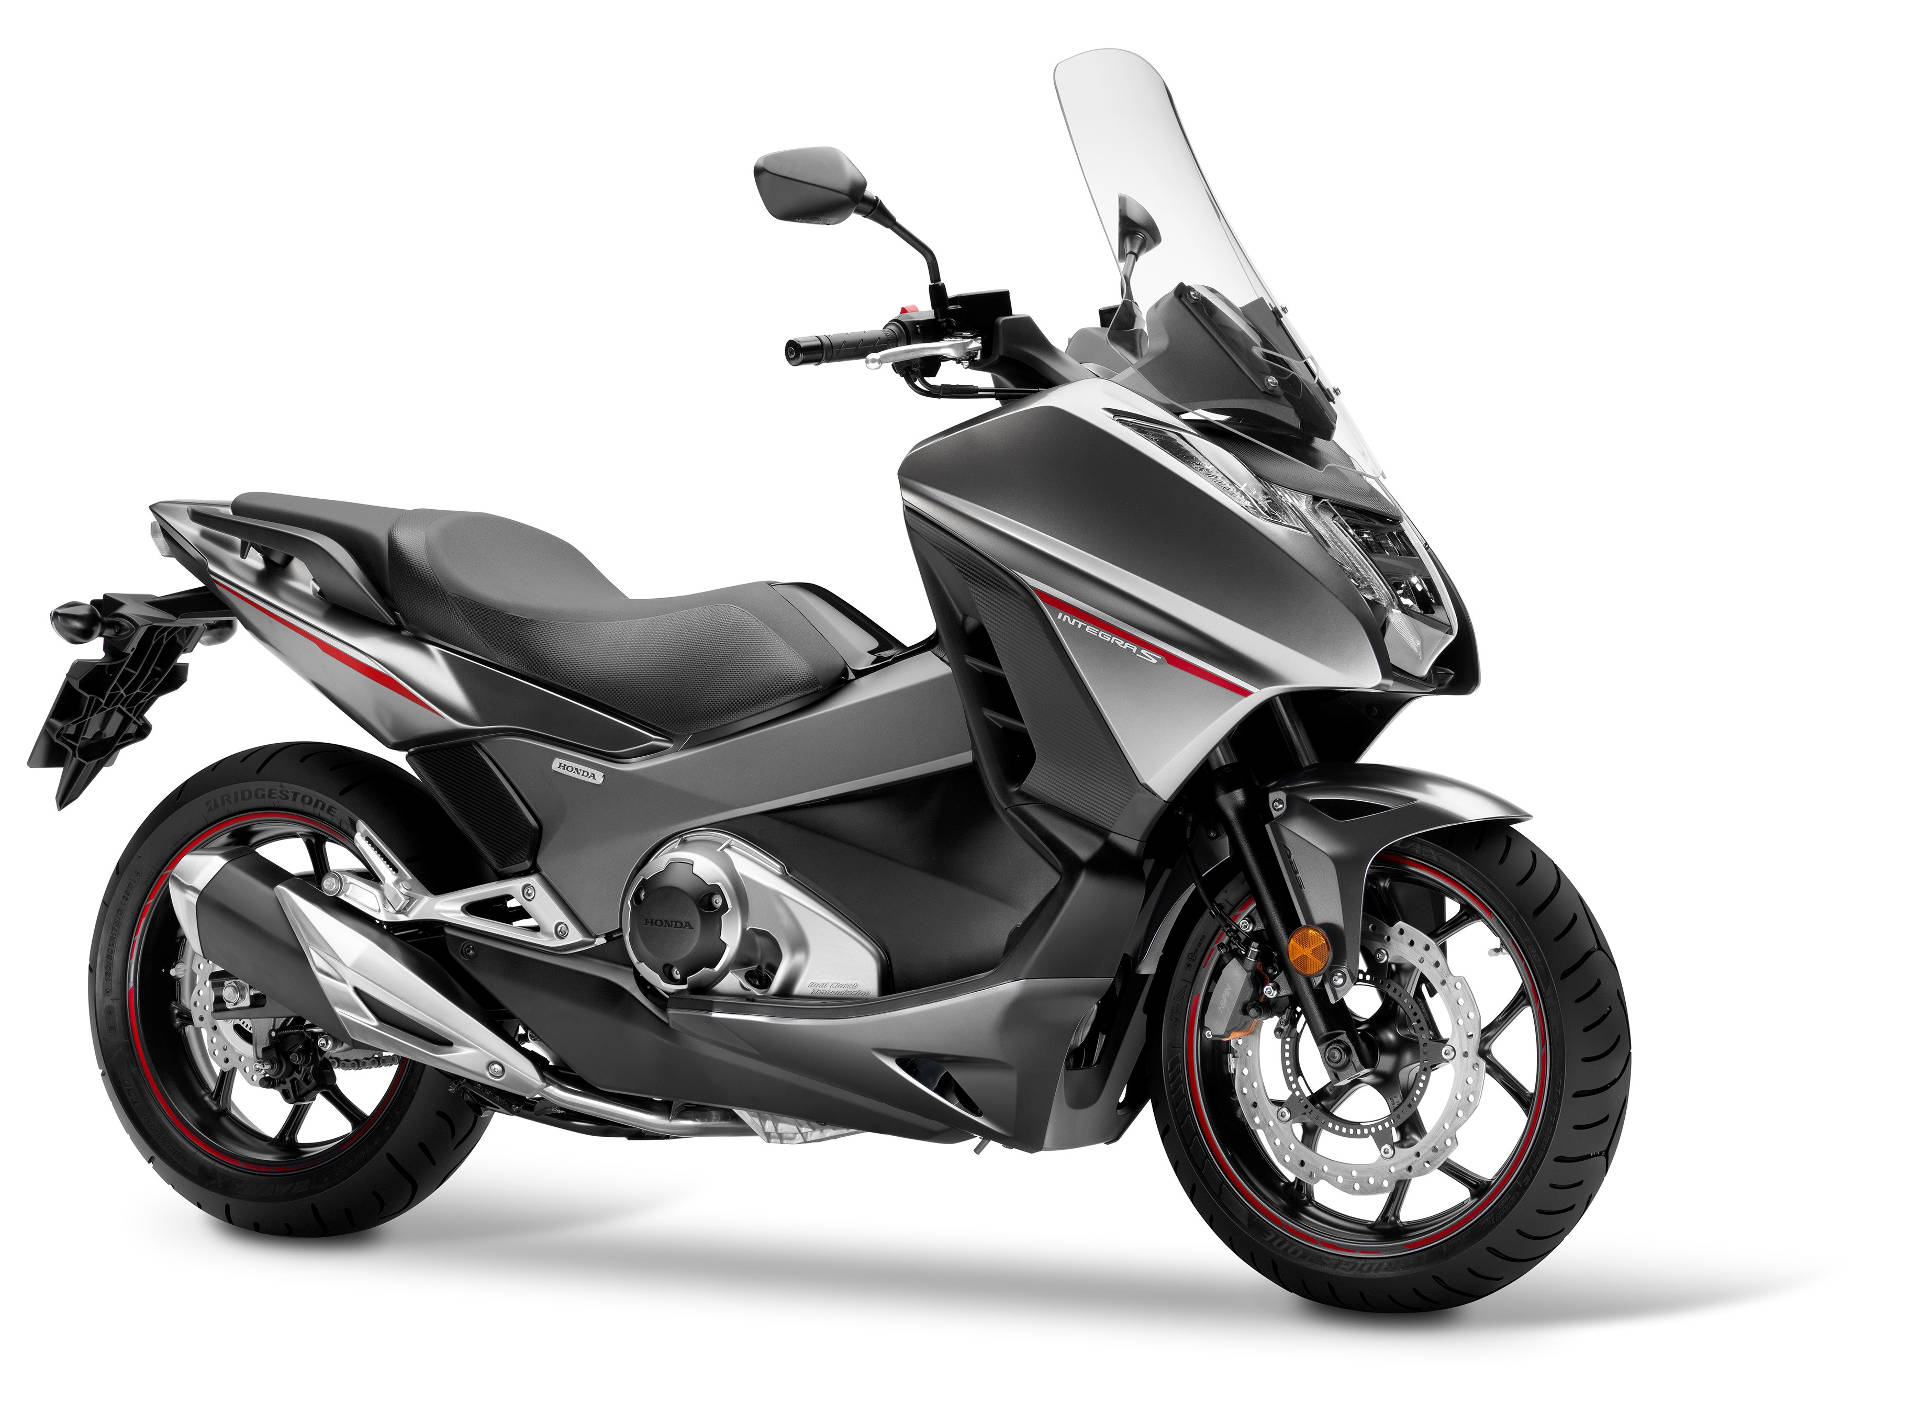 a quiet revolution from honda? 745cc twin scooter family getting